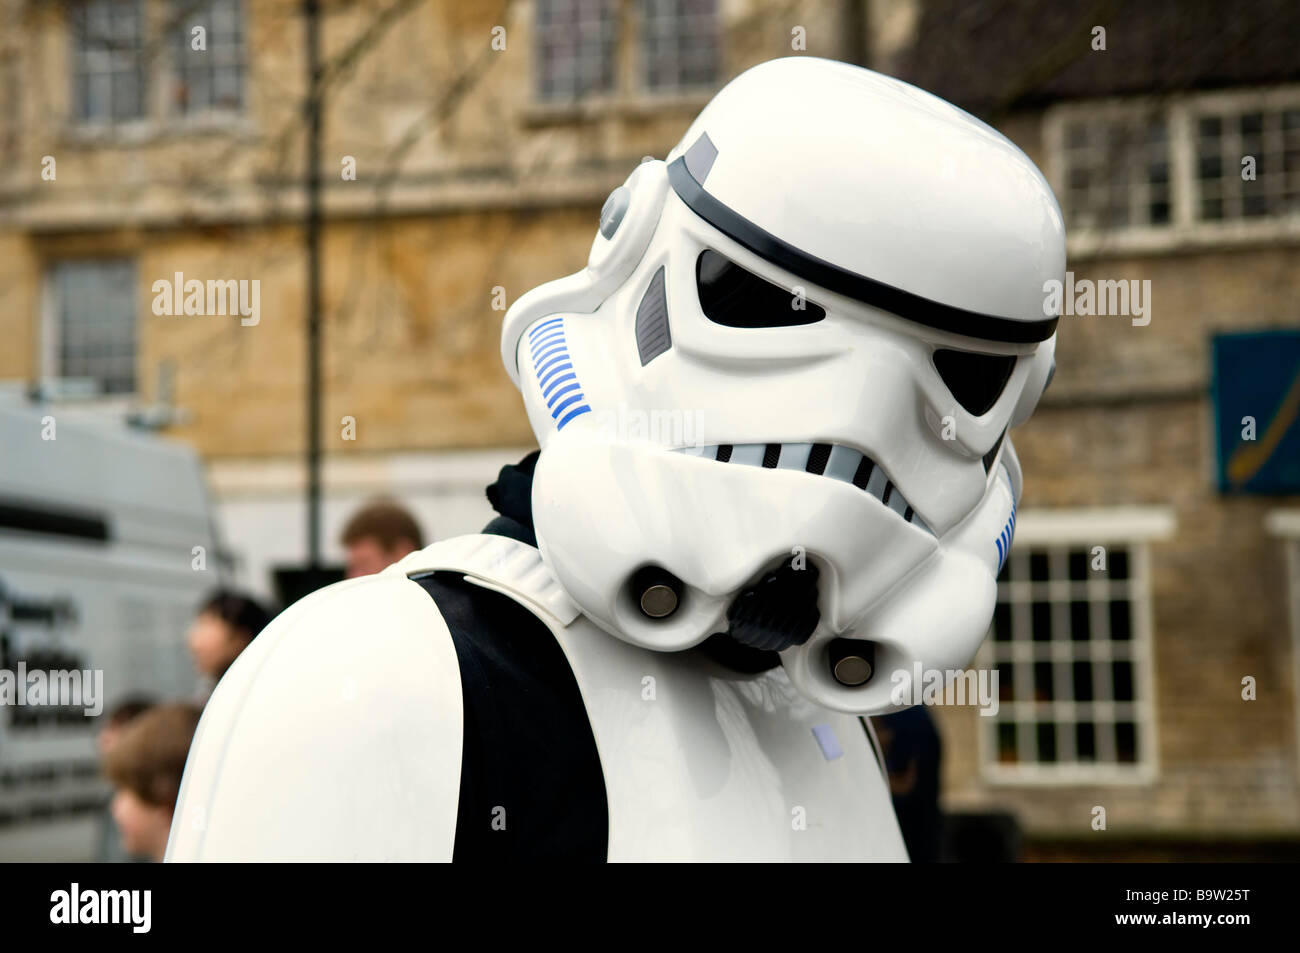 Head shot of a Star Wars storm trooper character at a sci-fi day held at the Bradford on Avon library in Wiltshire - Stock Image